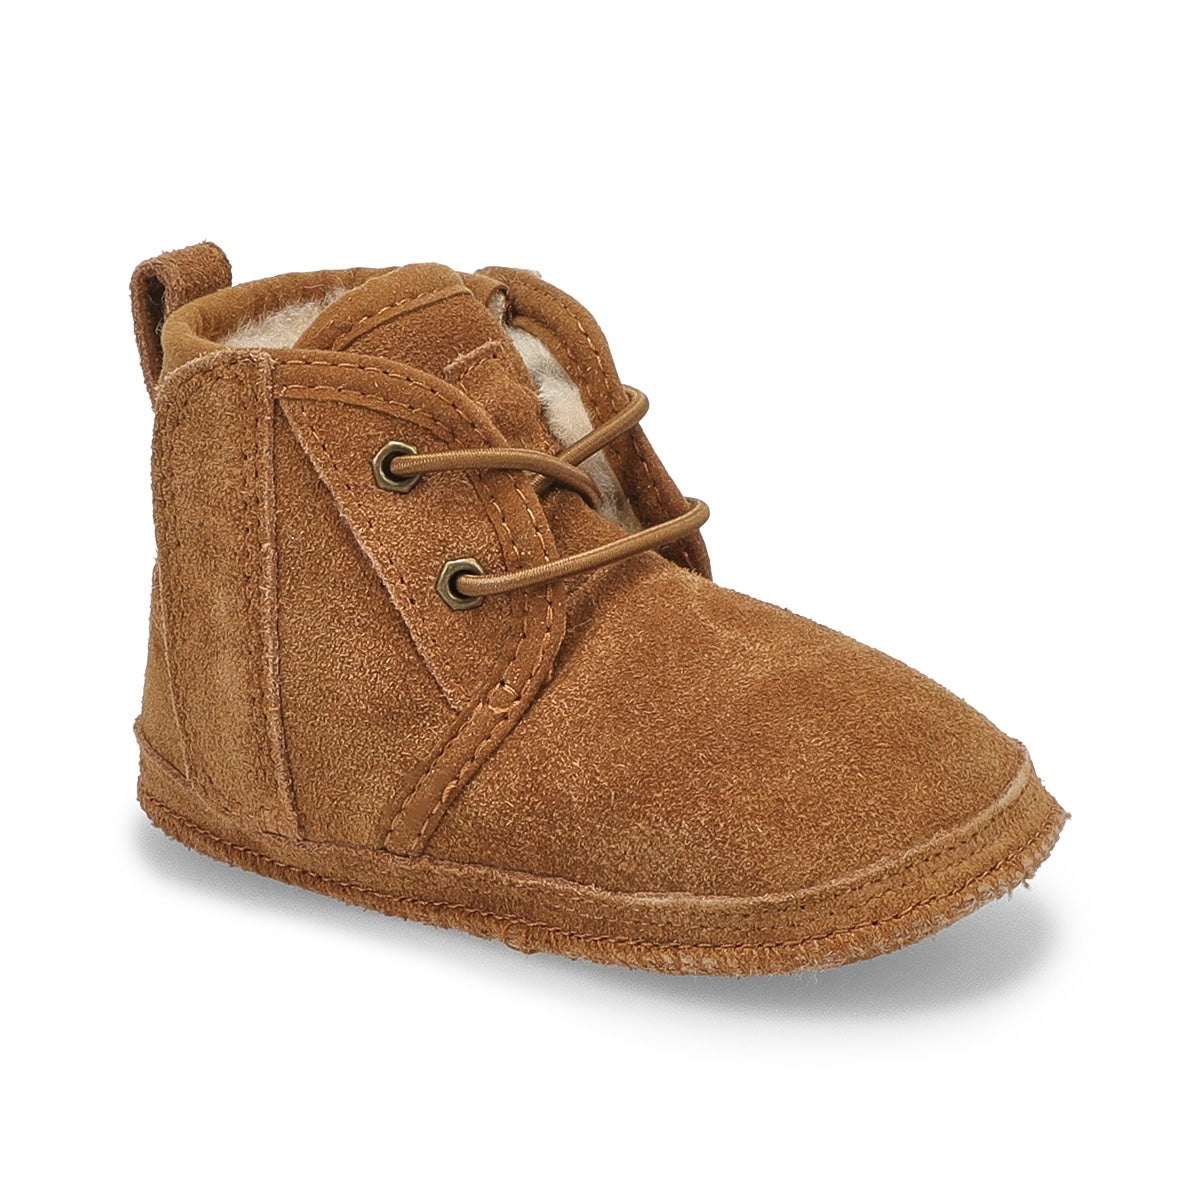 Infant's Neumel With Beanie - Chestnut